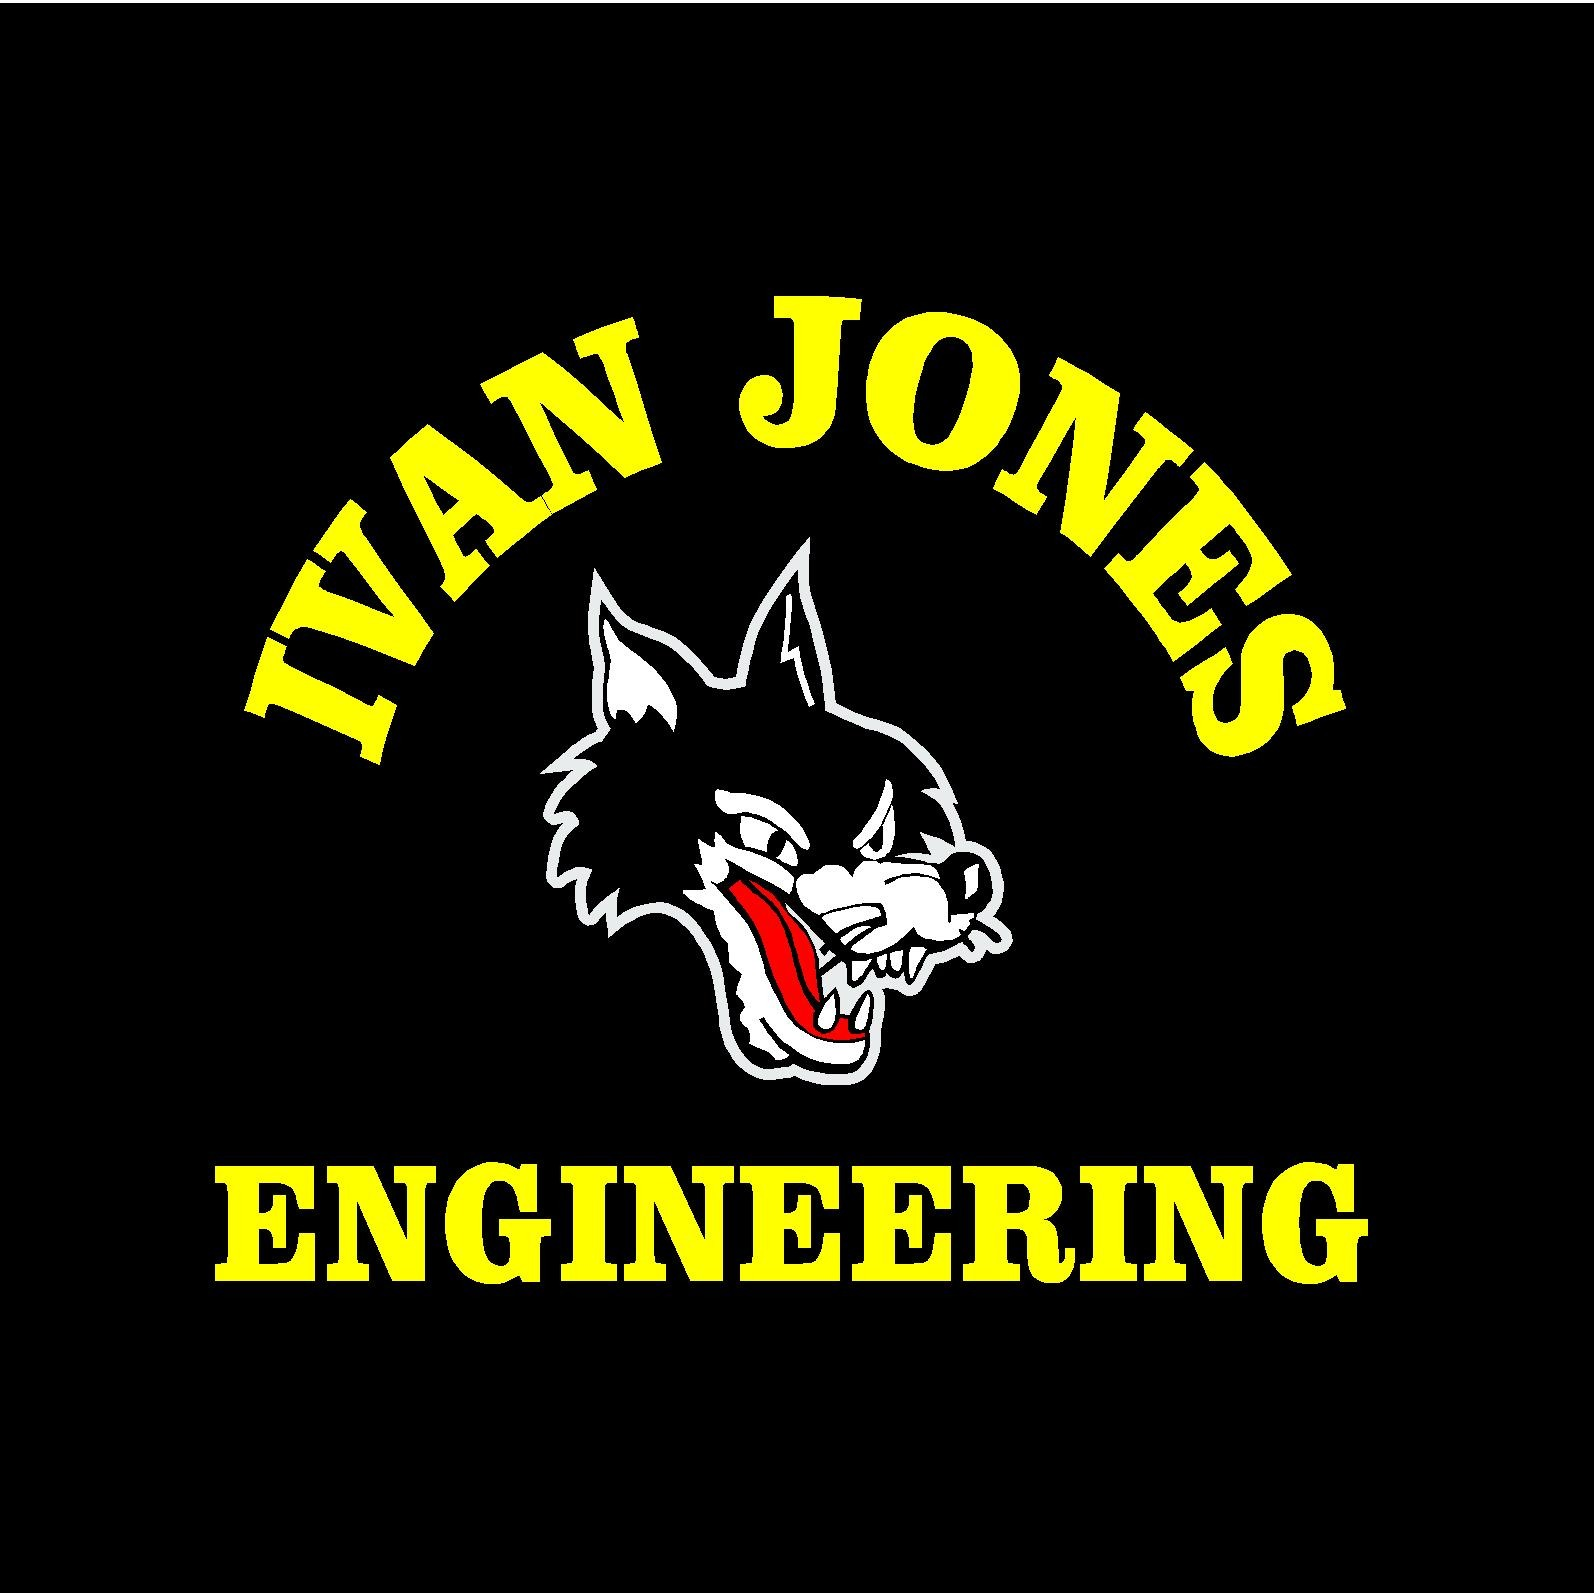 Ivan Jones Engineering